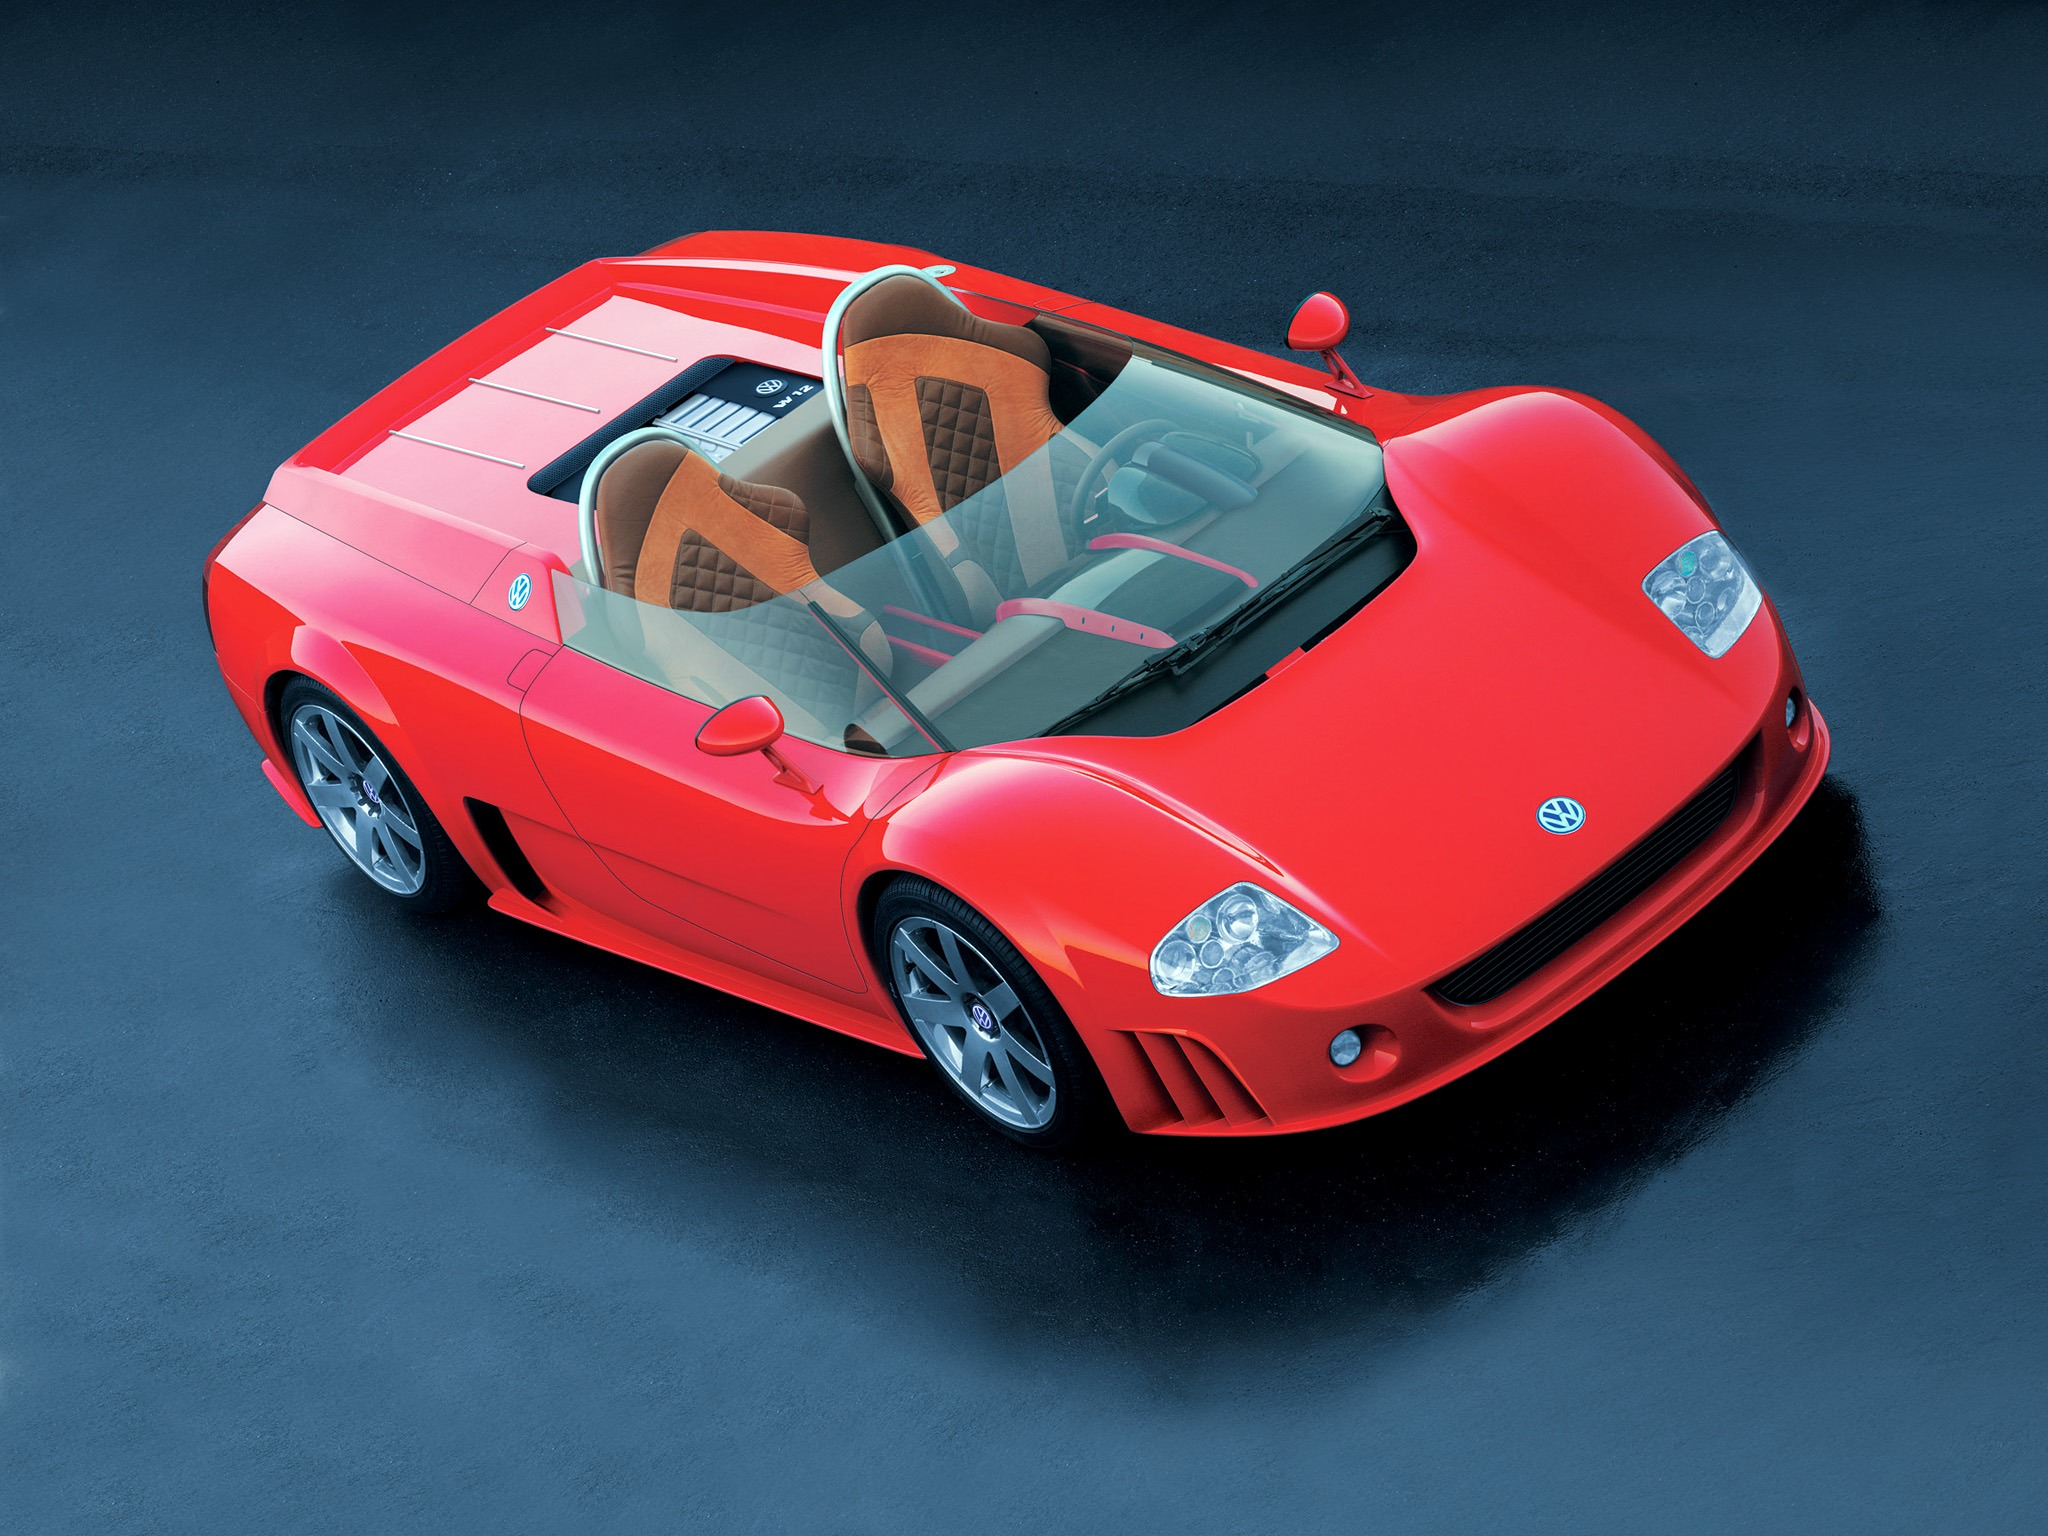 Volkswagen W12 Roadster Concept 1998 – Old Concept Cars